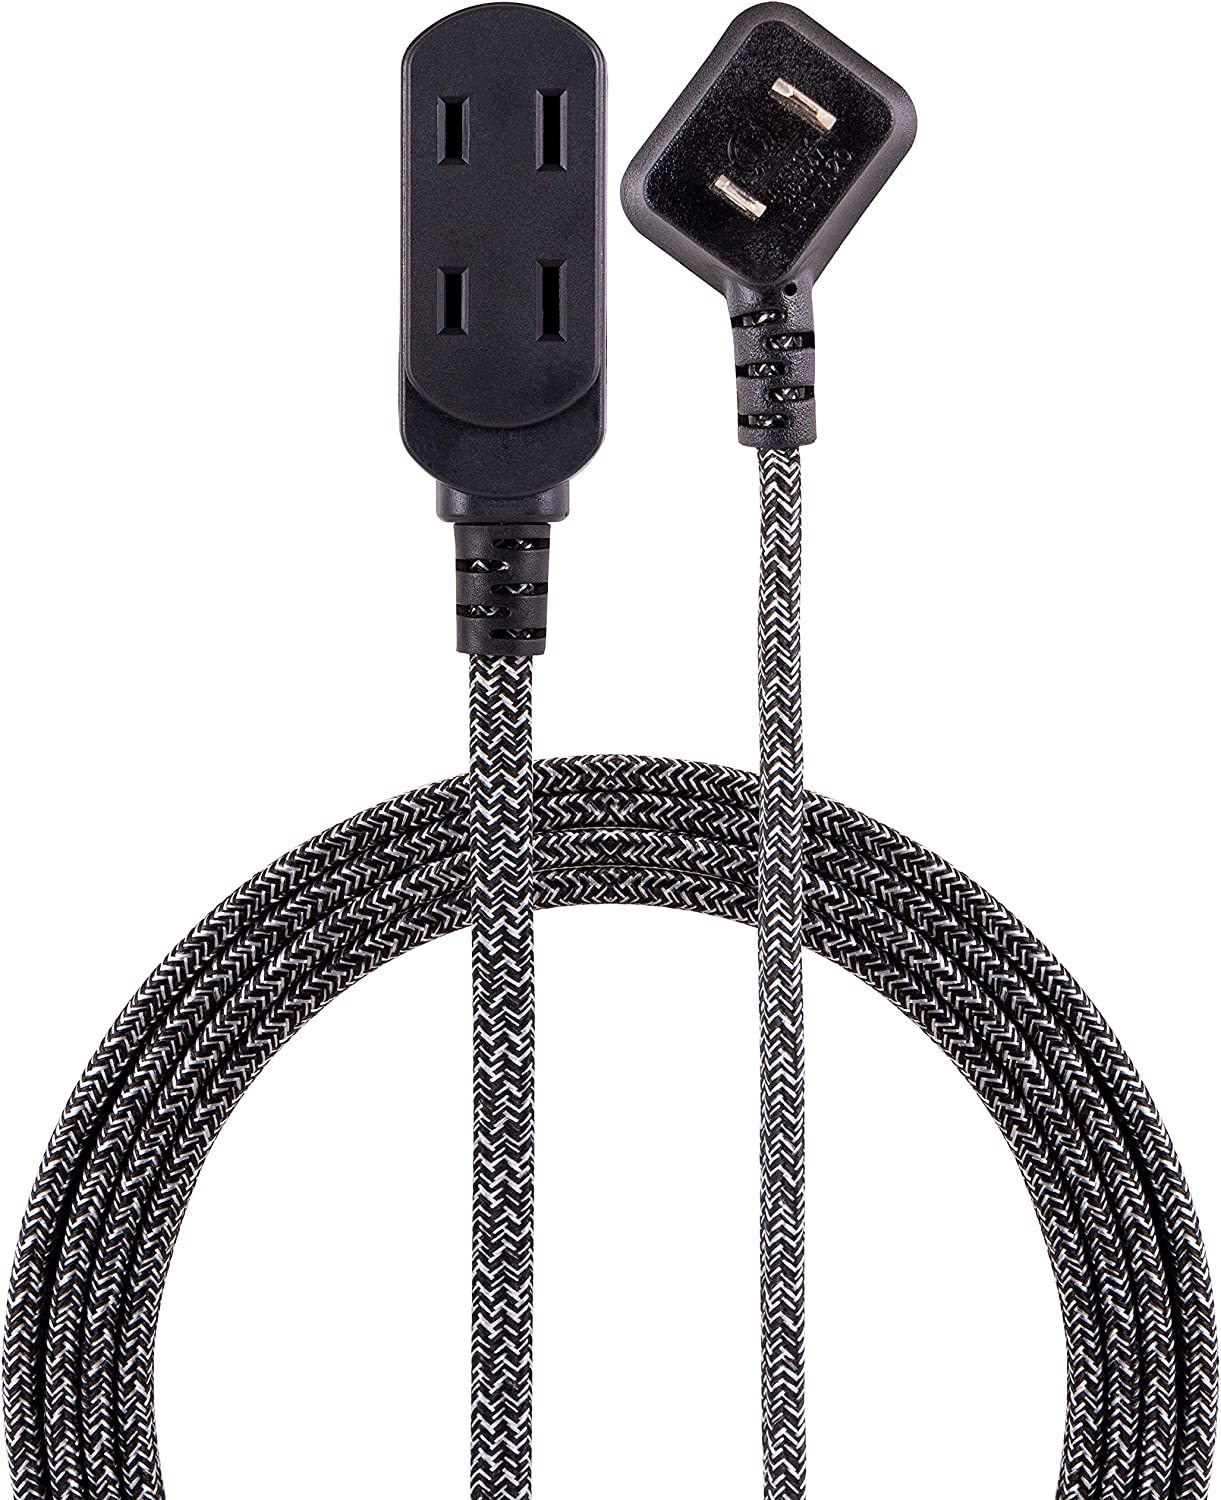 Cordinate 43438-T1, Black/Gray, Designer 3 Extension, 2 Prong Power Strip, Extra Long 15 Ft Cable with Flat Plug, Braided Fabric Cord, Slide-to-Close Safety Outlets, 43438